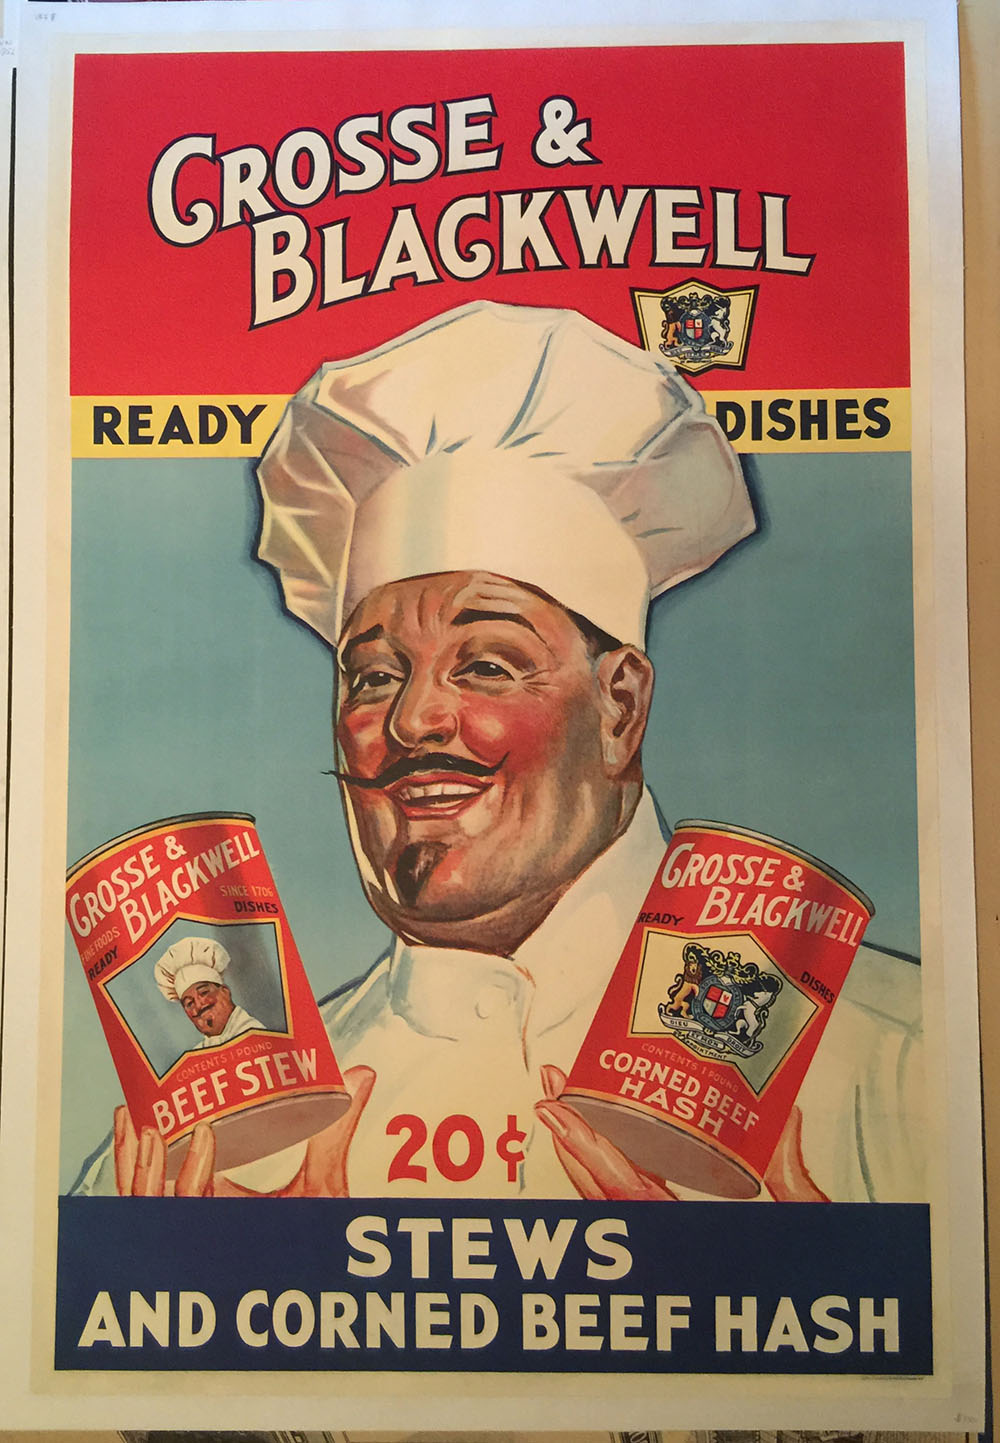 Crosse & Blackwell Co. 1930s Ad Poster